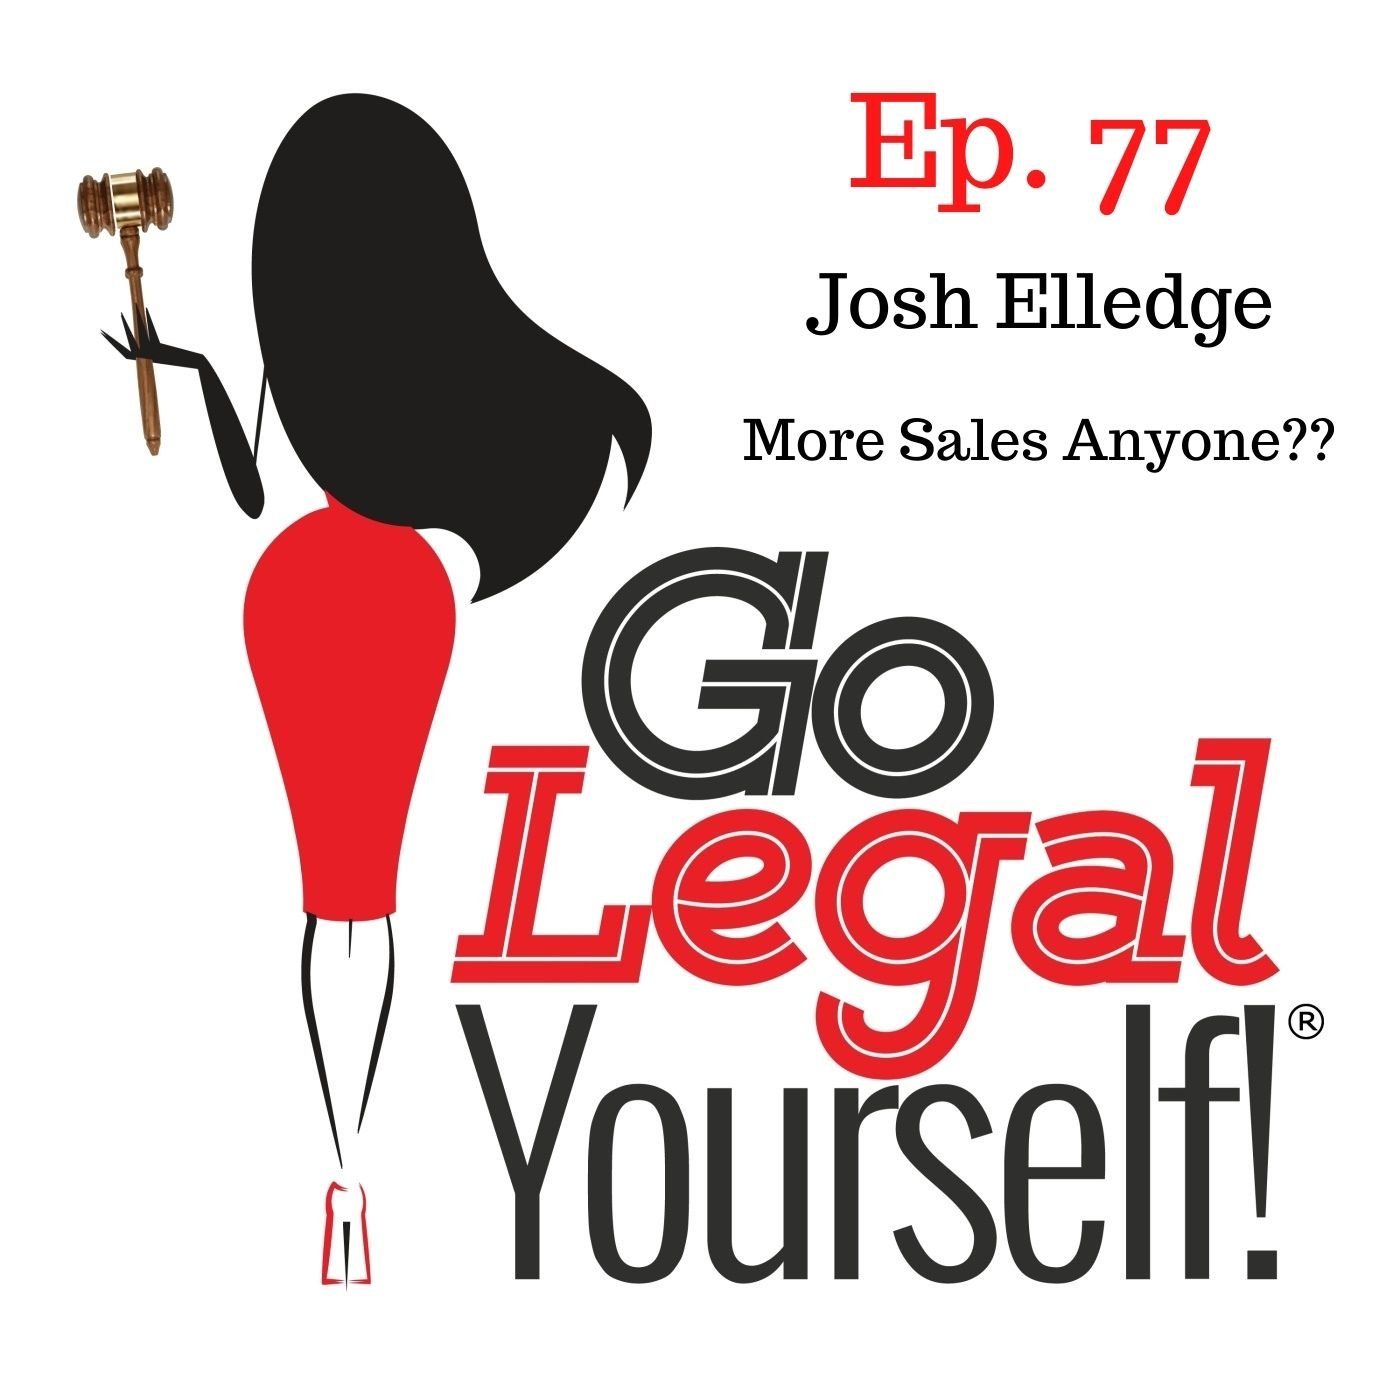 Ep. 77 Josh Elledge: More Sales Anyone?